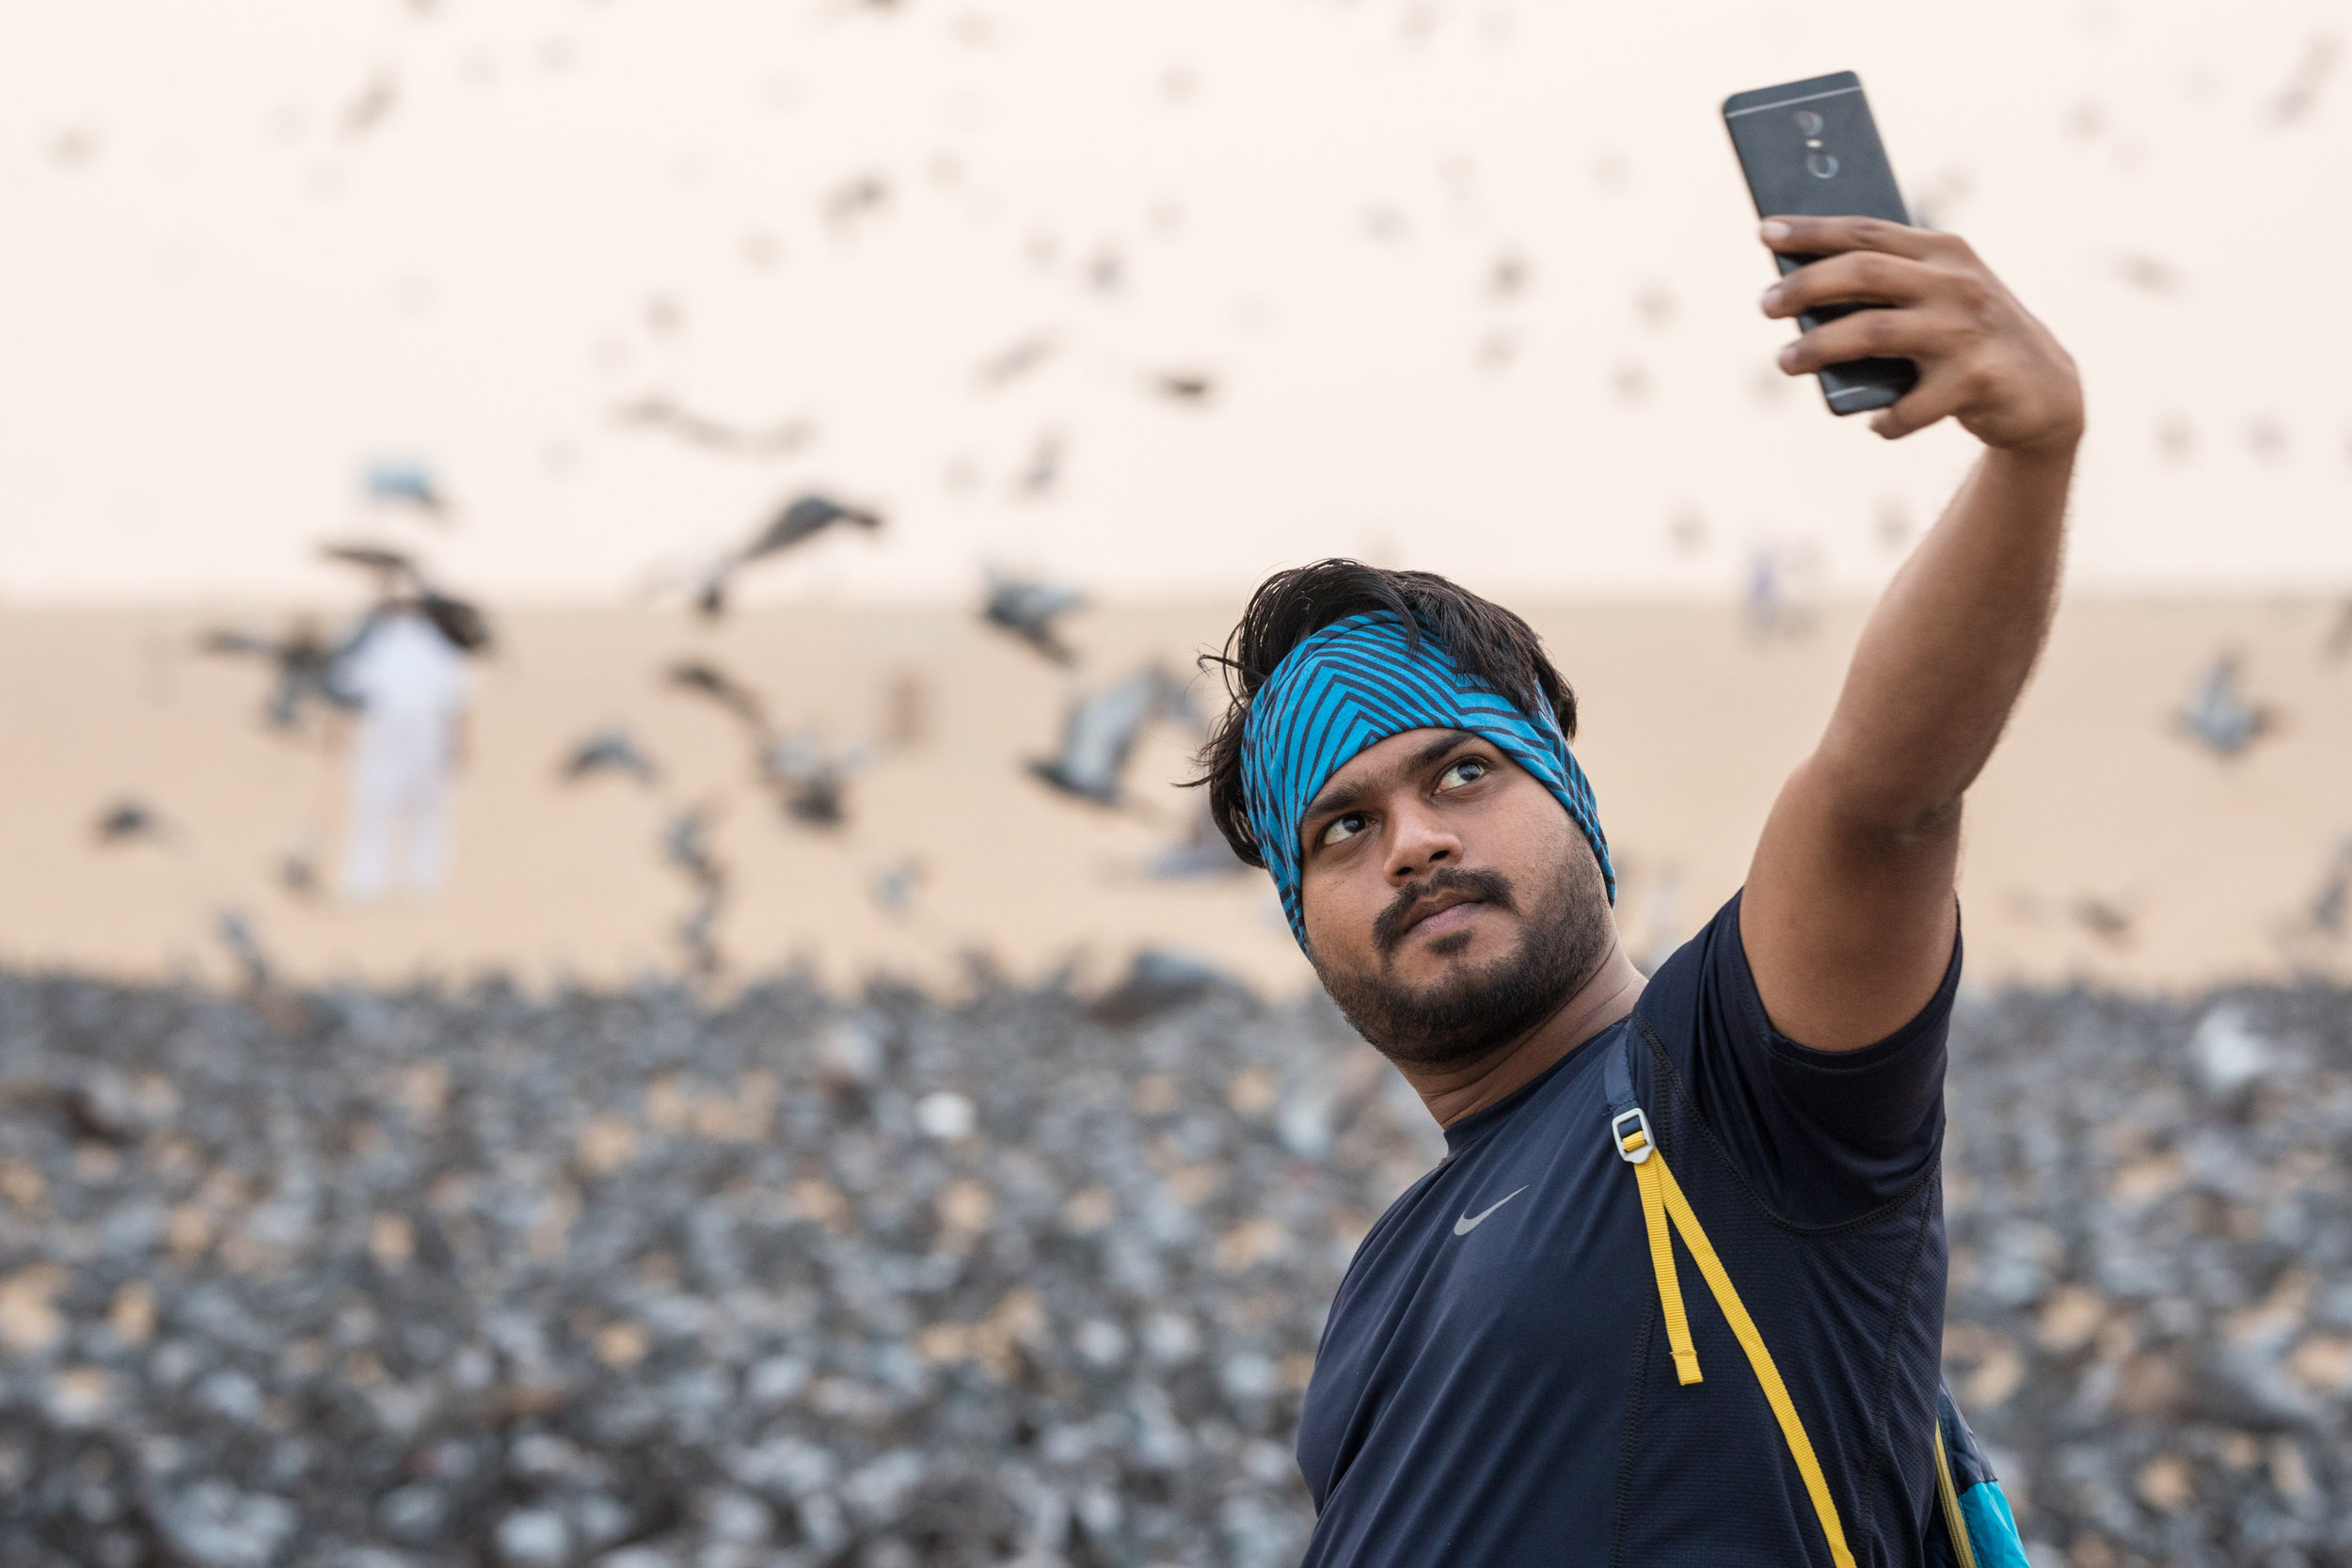 An Indian Man takes a selfie in front of feeding birds on the beach at Chennai.